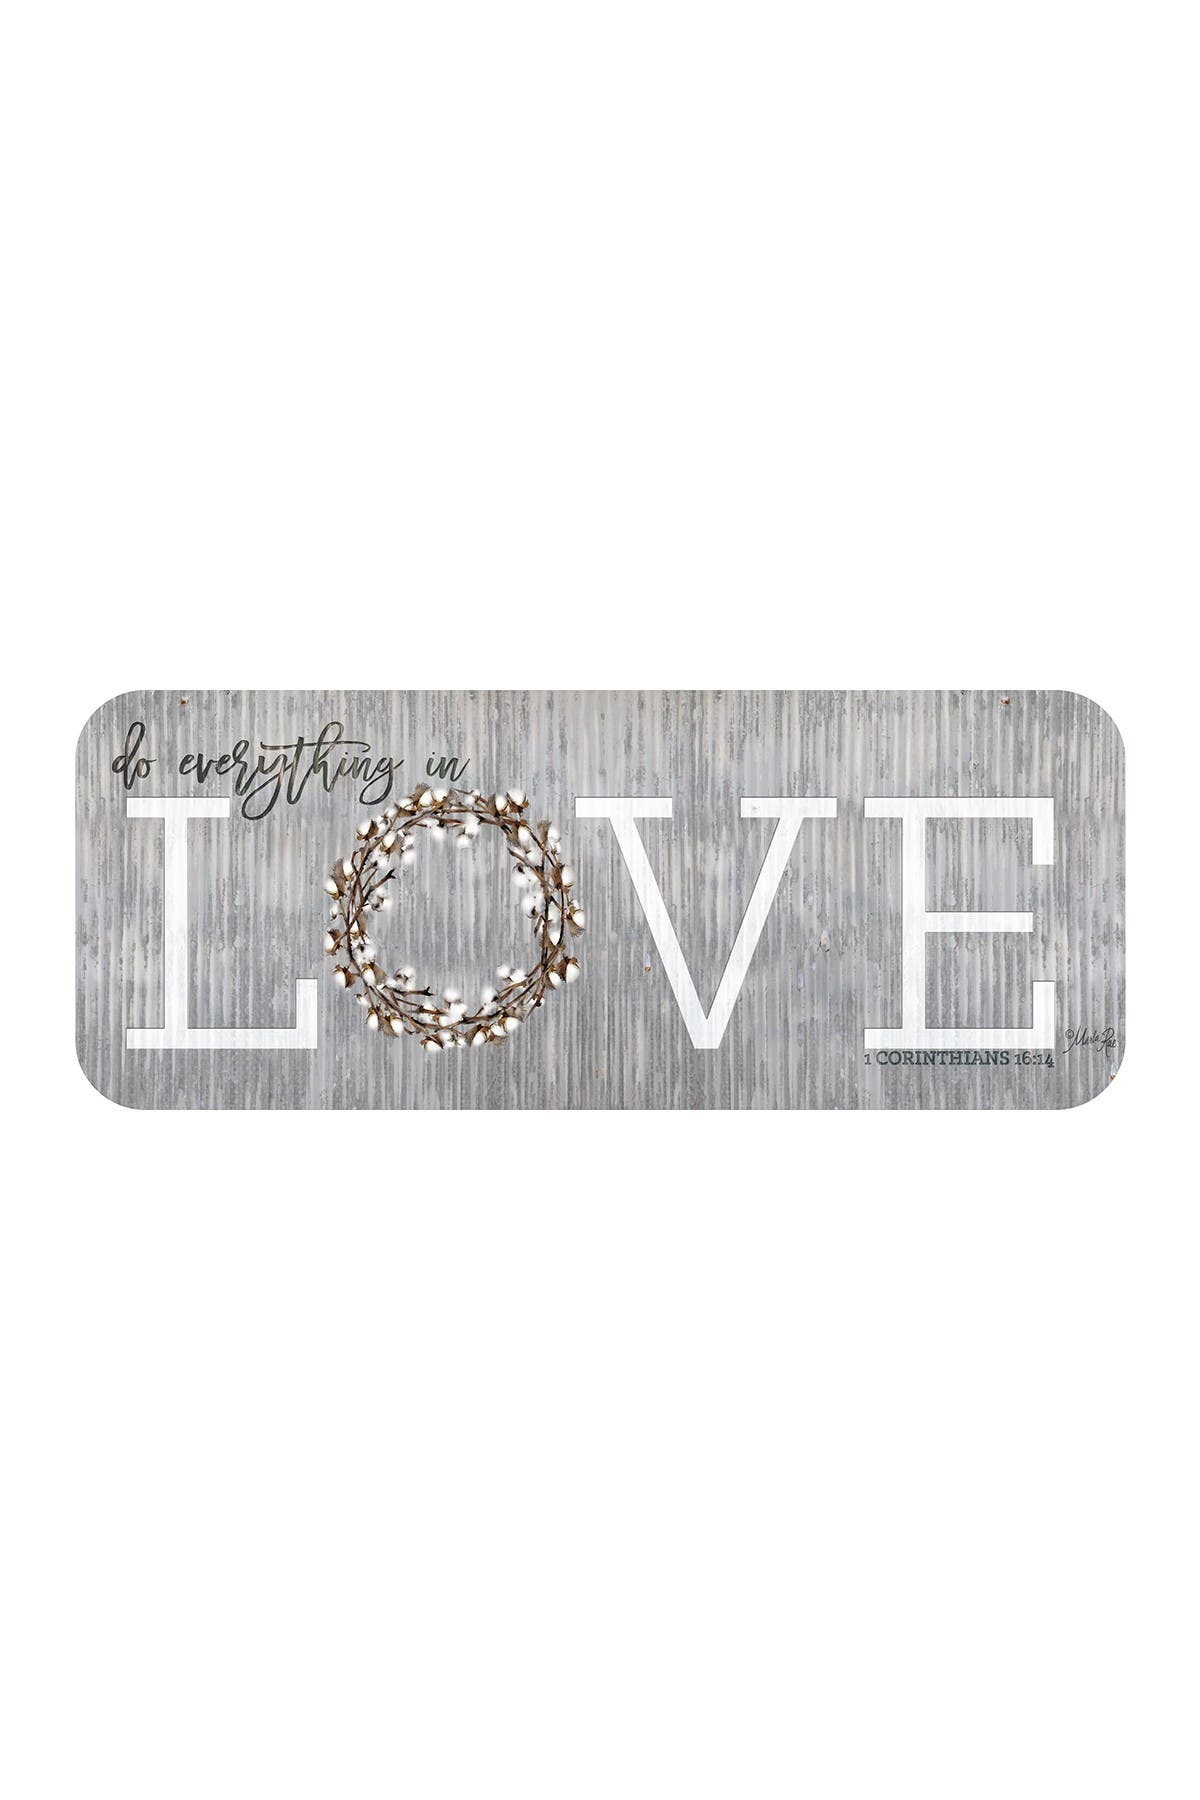 "Image of COURTSIDE MARKET Do Everything In Love 12"" x 30"" Gallery Art Decal"